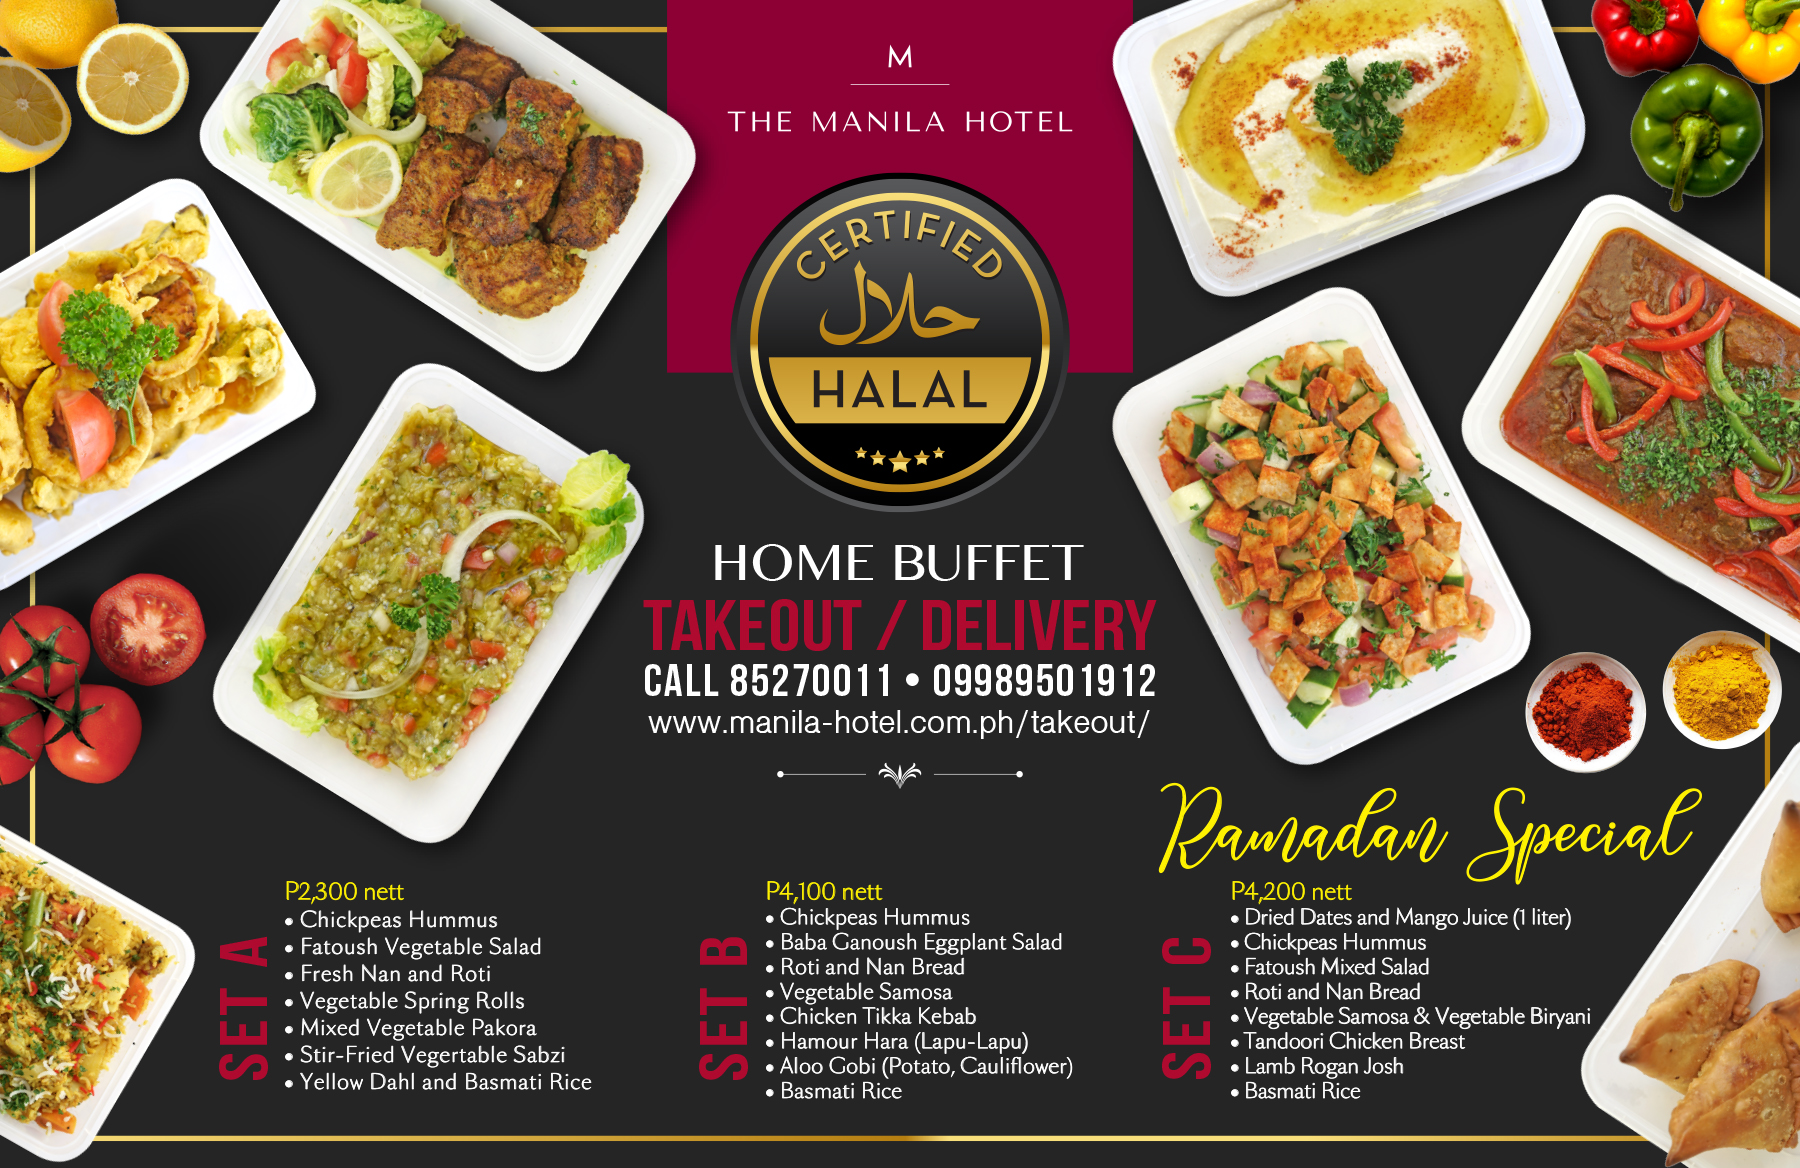 The Manila Hotel Café Ilang-Ilang is now offering halal-certified food for Takeout and Delivery!